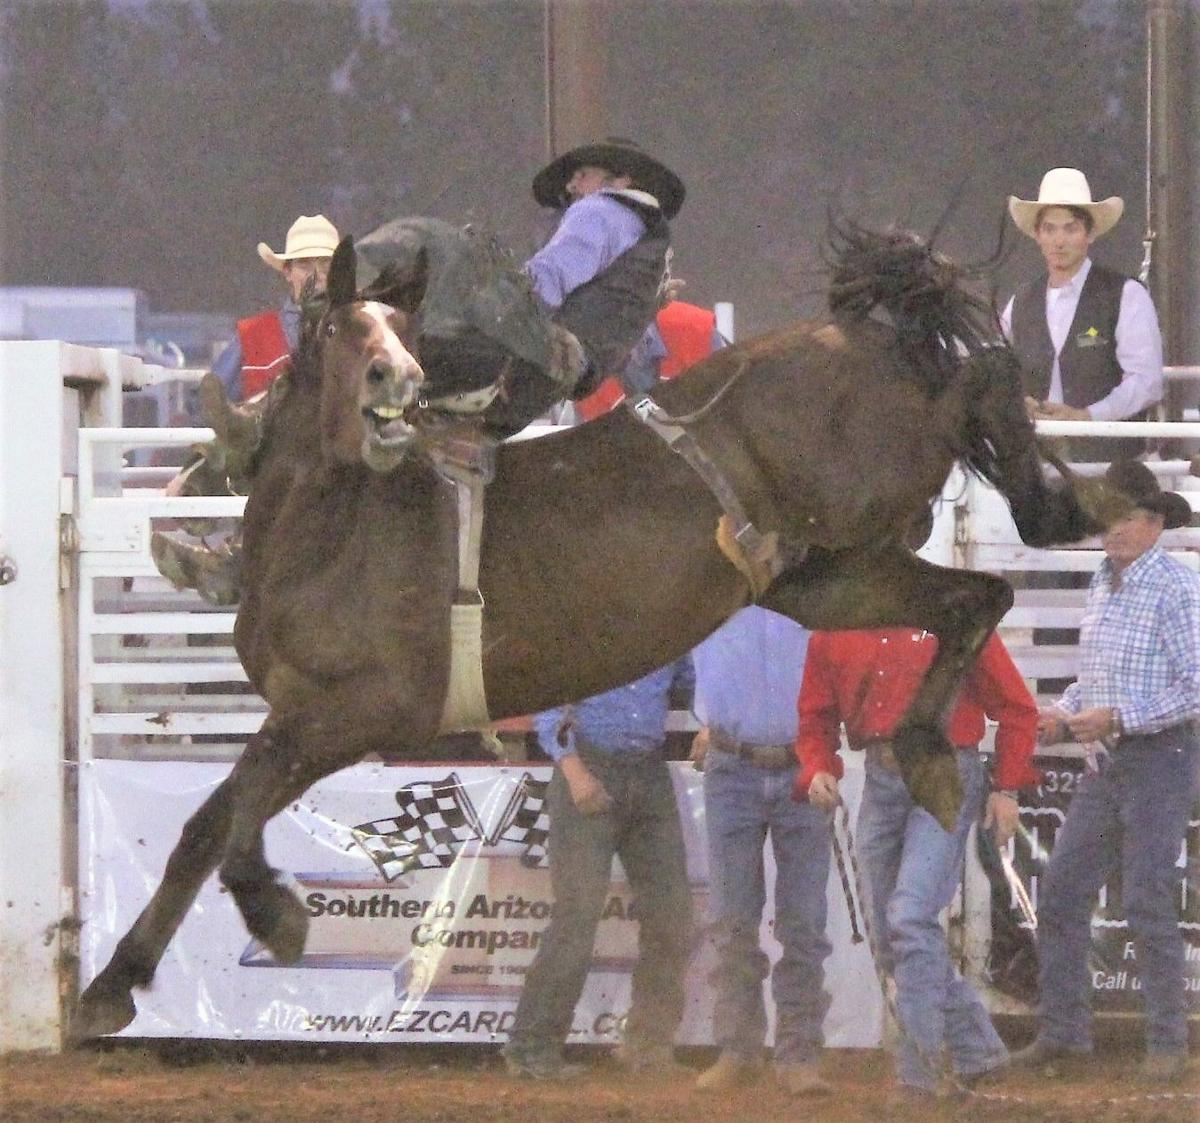 Collegiate rodeo in Douglas this weekend